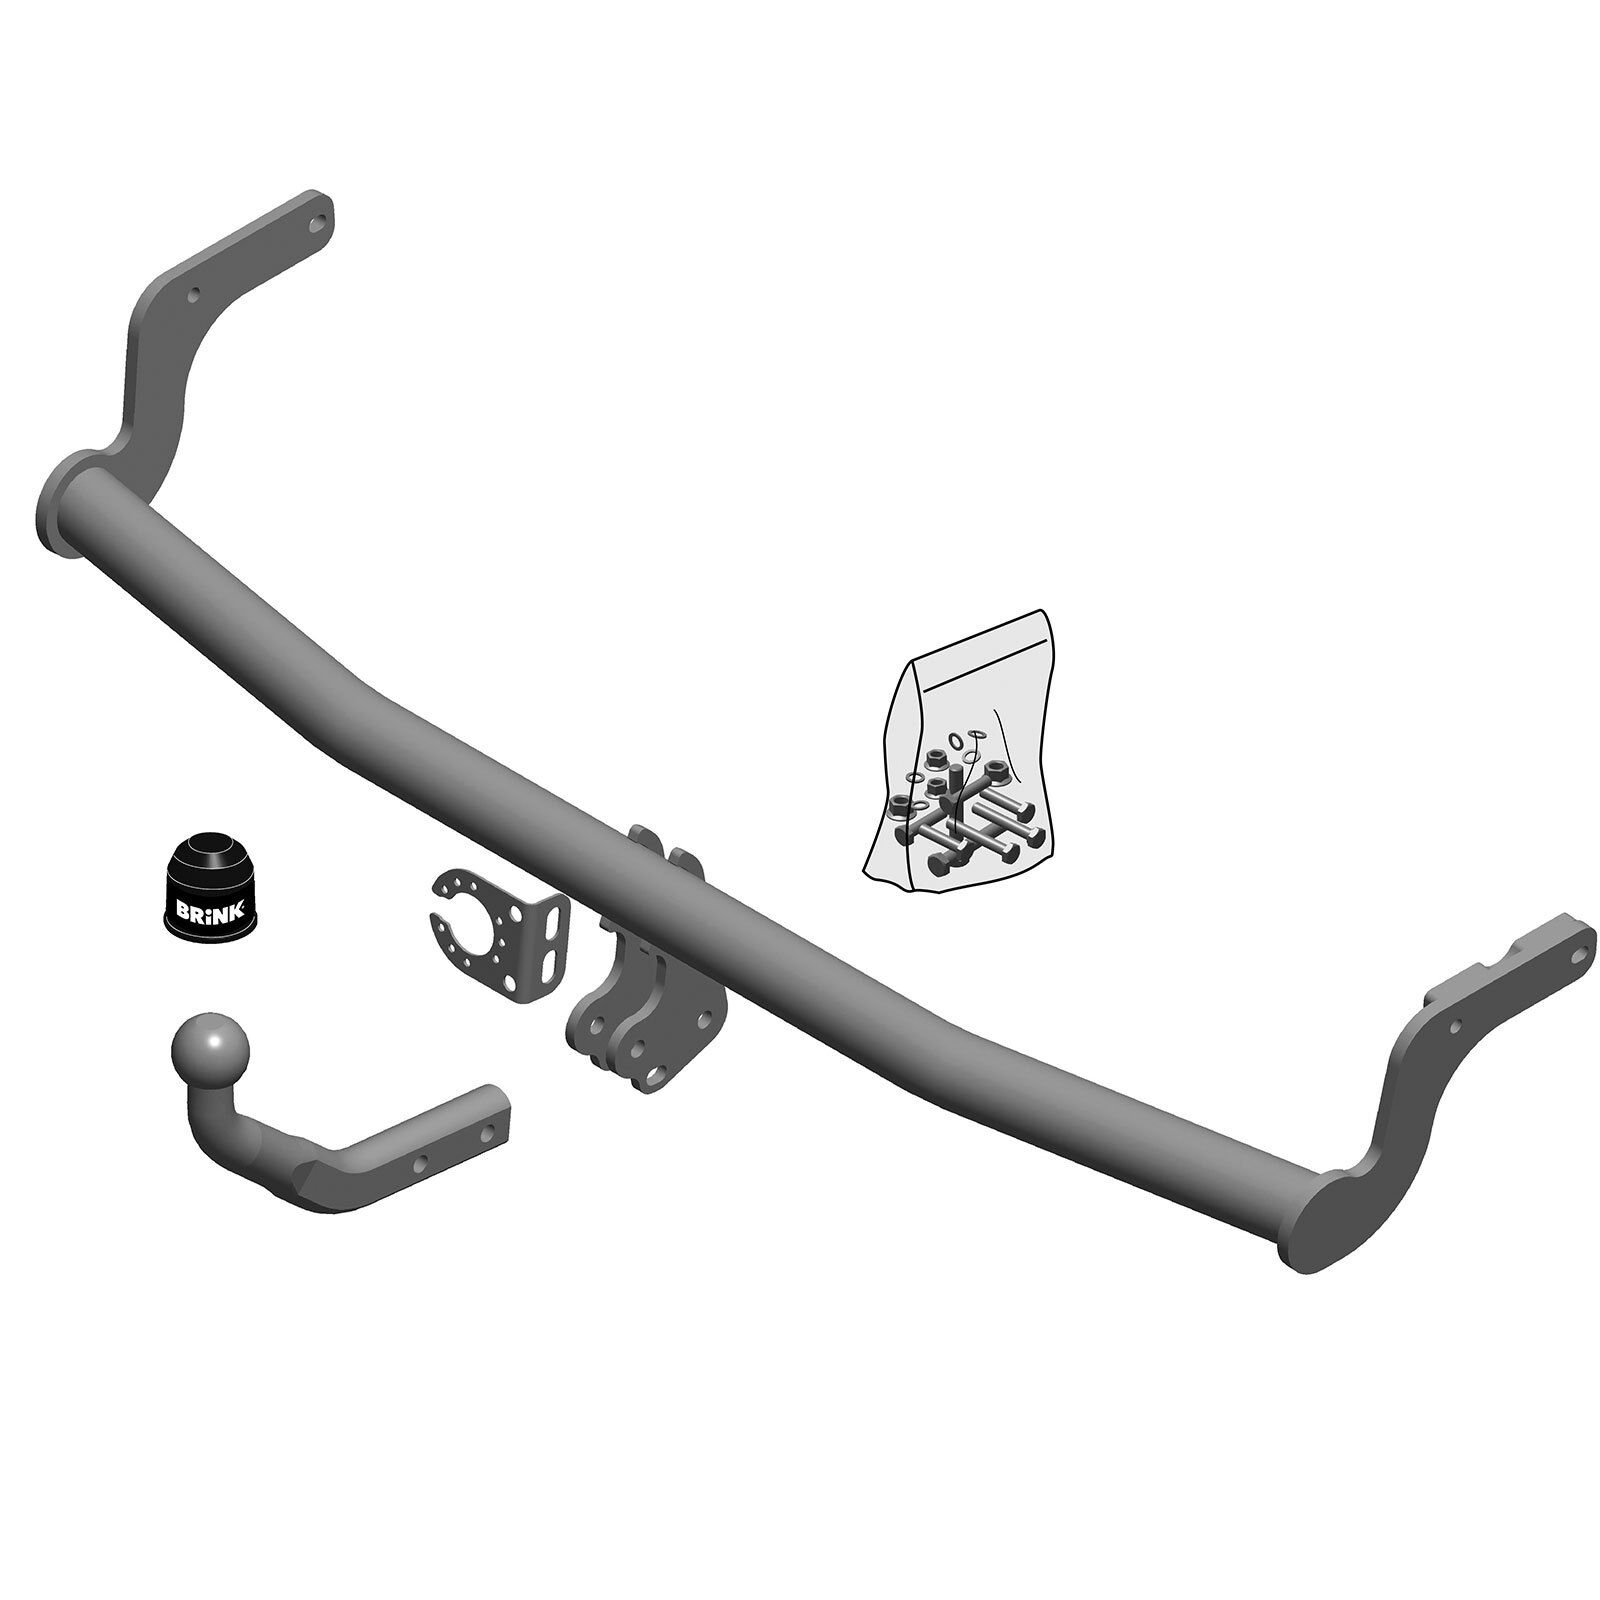 Swan Neck Tow Bar Brink Towbar for Seat Leon Estate ST 2017 Onwards